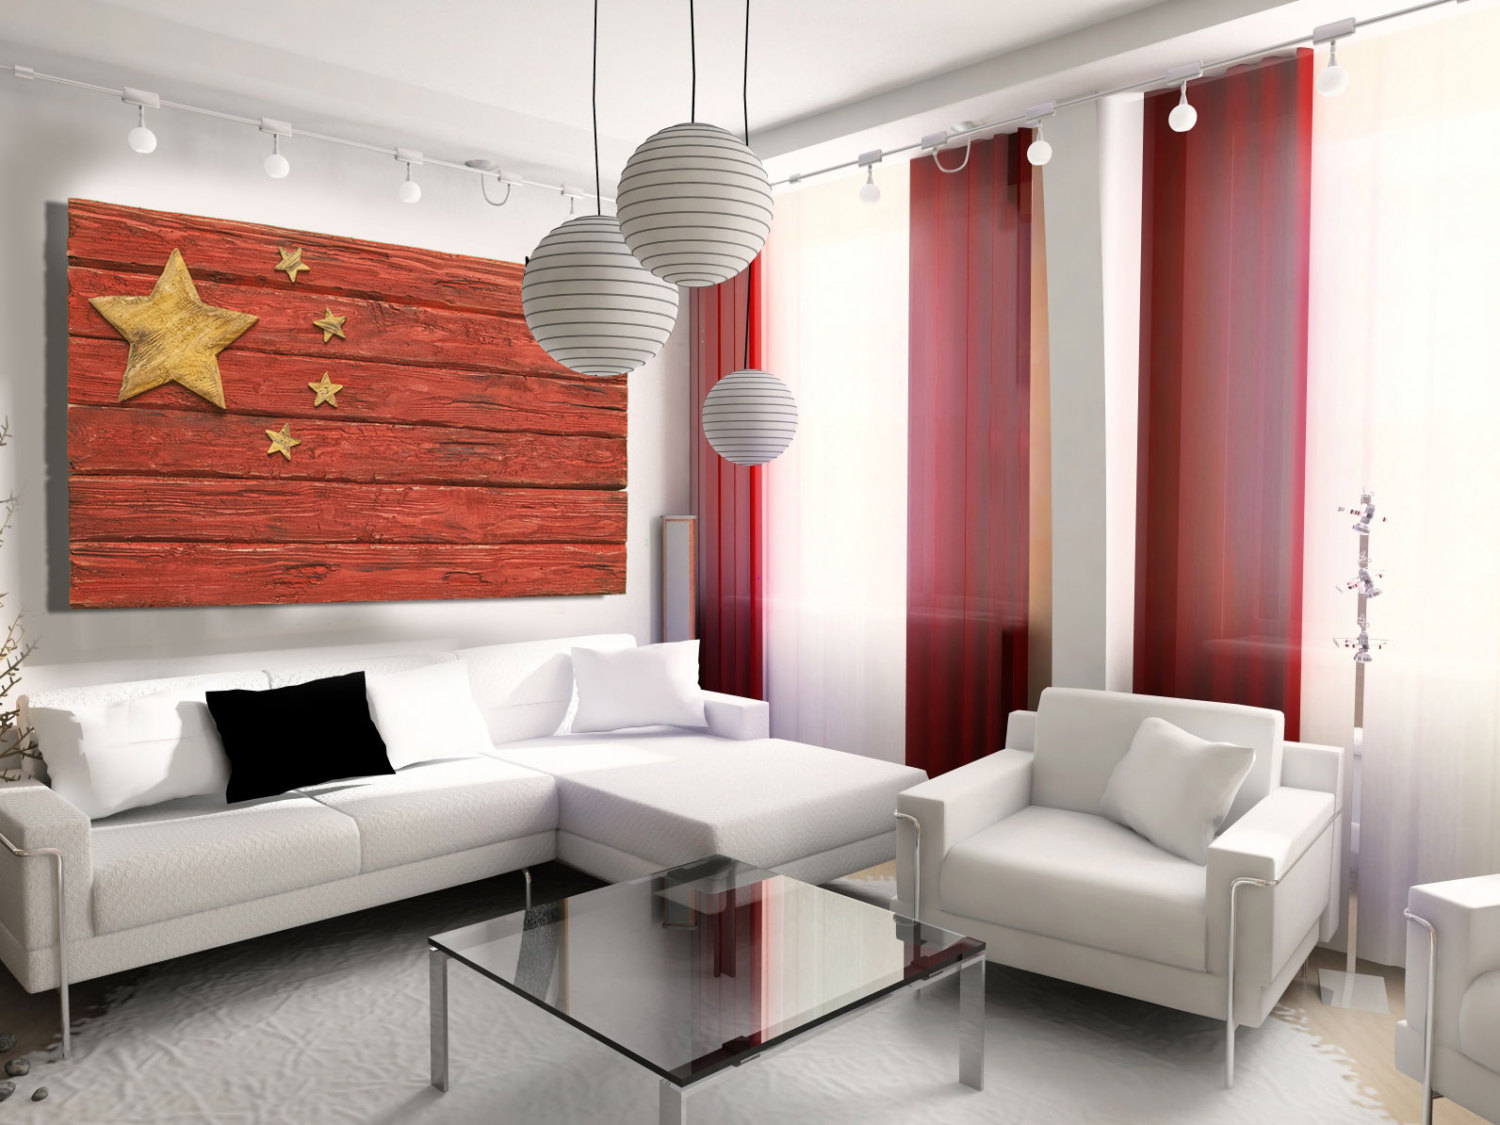 Art Décor: Handmade, Distressed Wooden Chinese Flag, Vintage, Art